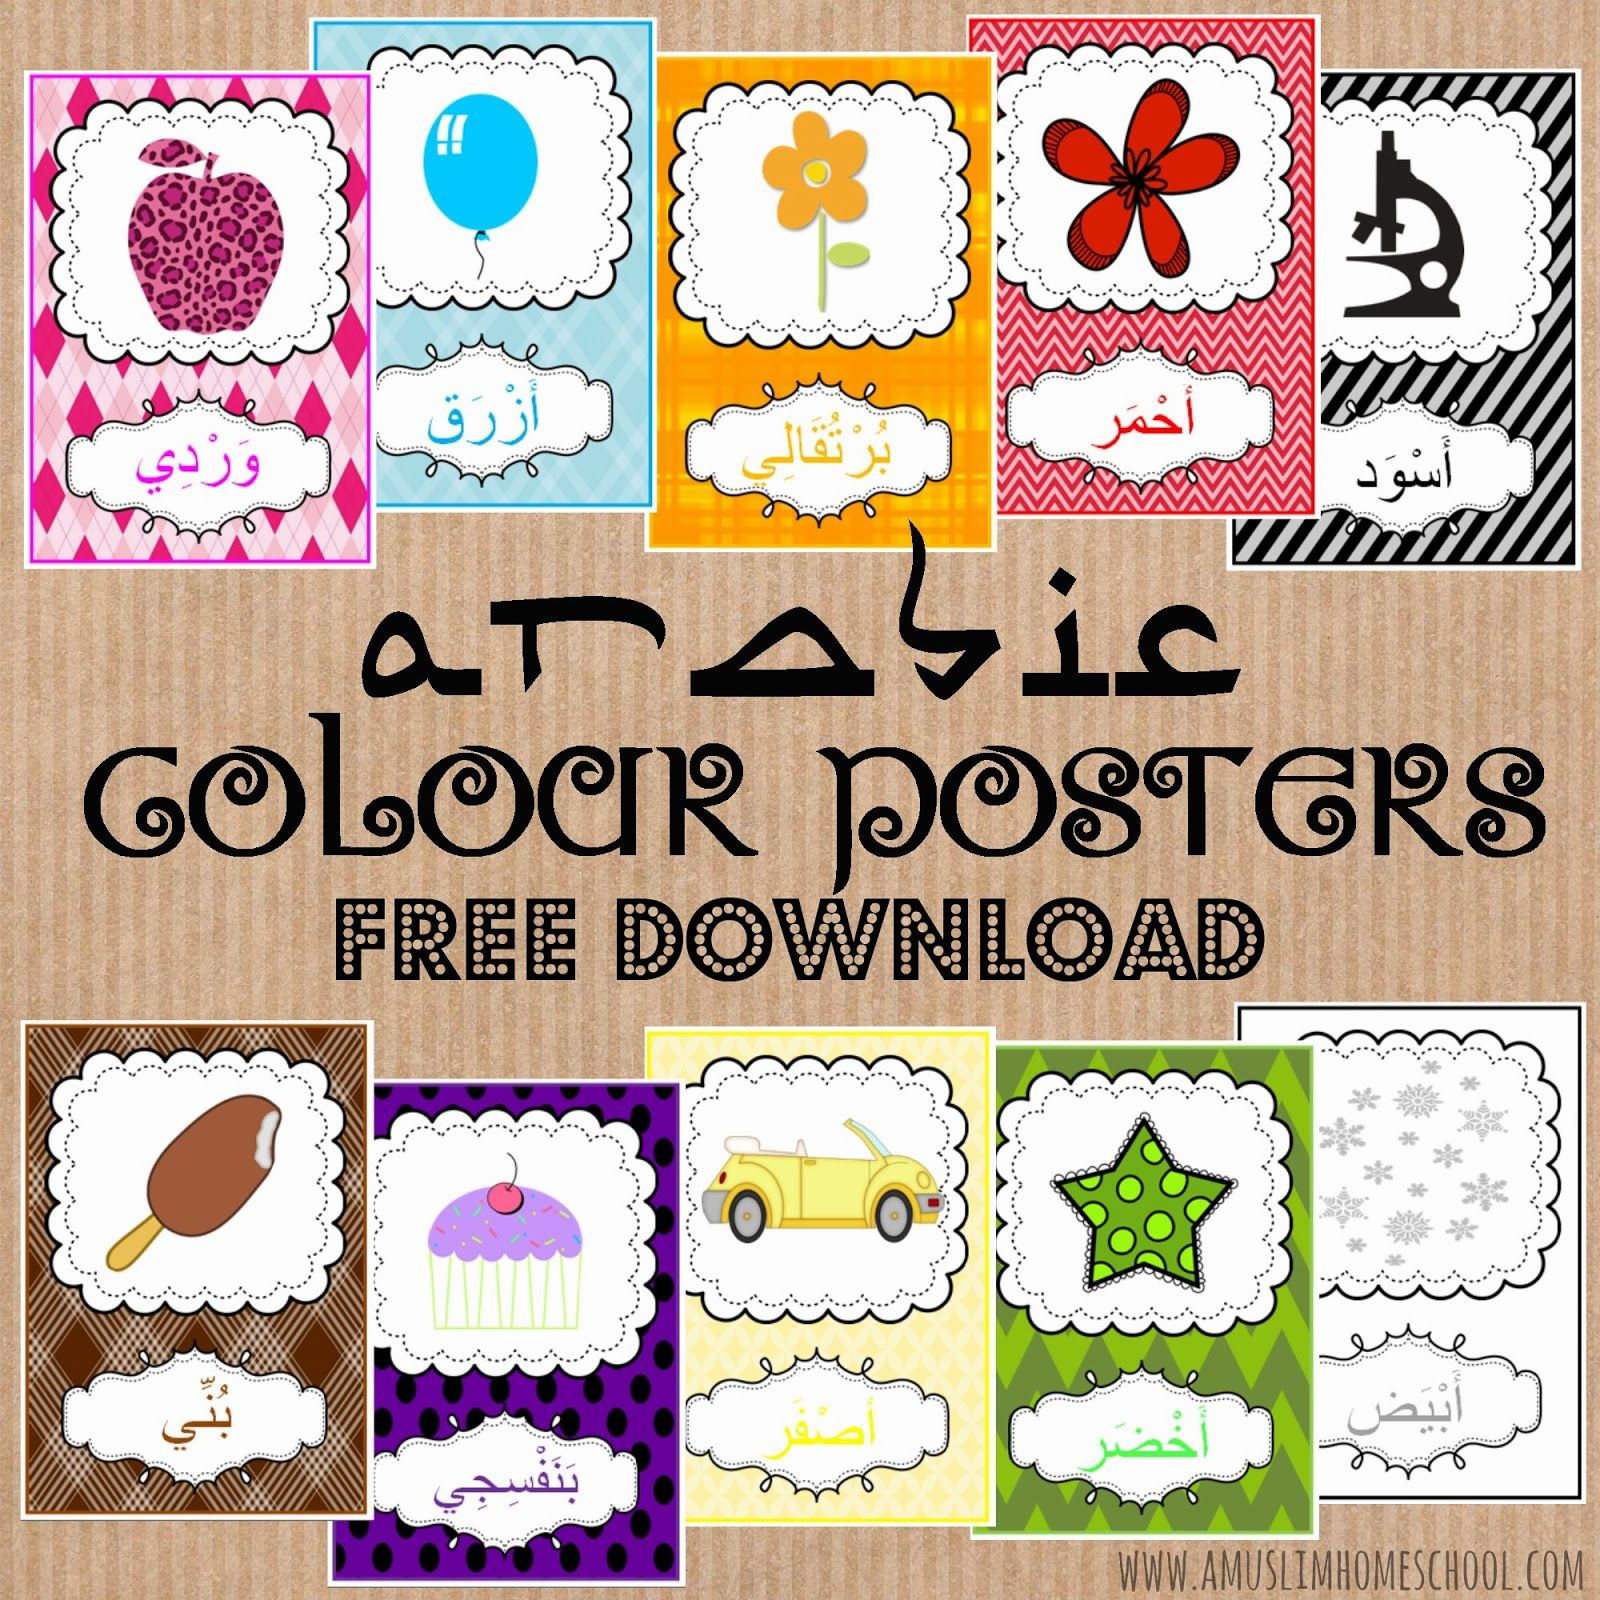 Printable Arabic Colour Posters! | Learning Arabic, Learn pertaining to Arabic Alphabet Poster Printable